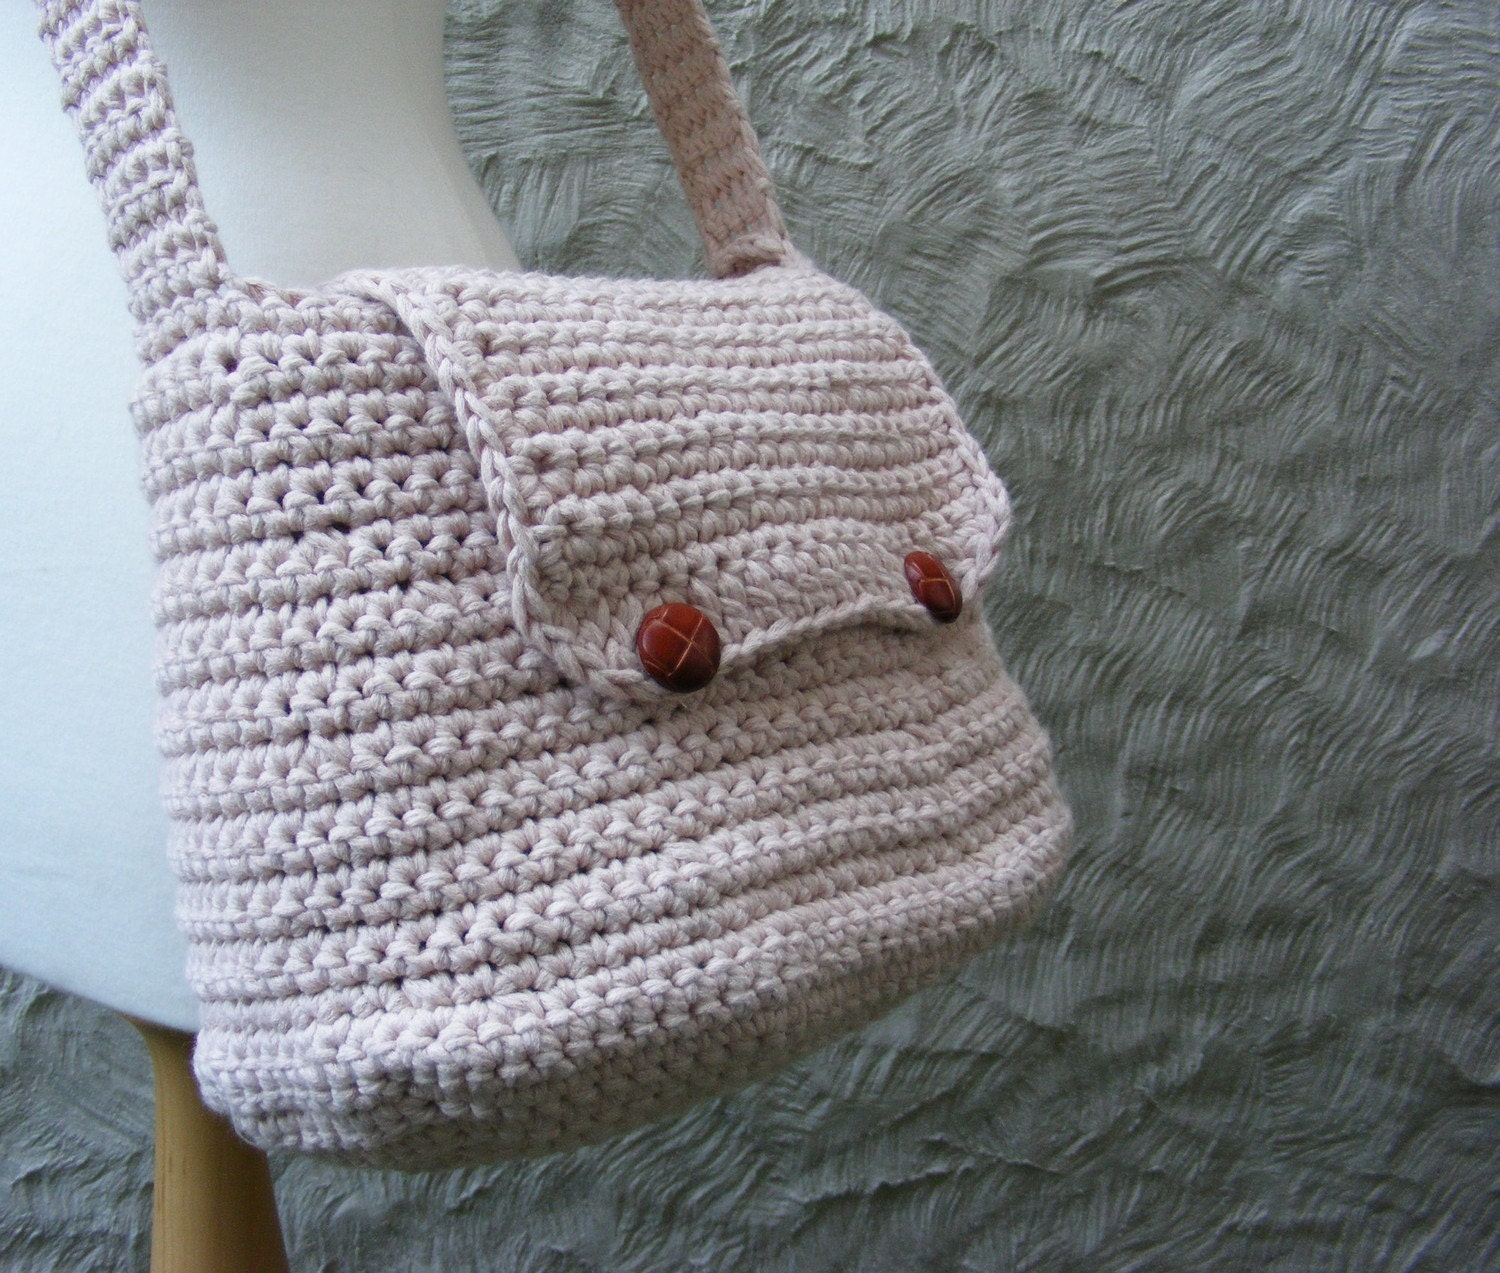 Crochet Bags And Purses Free Patterns : purse patterns free crochet bag and purse patterns little eyelash bag ...